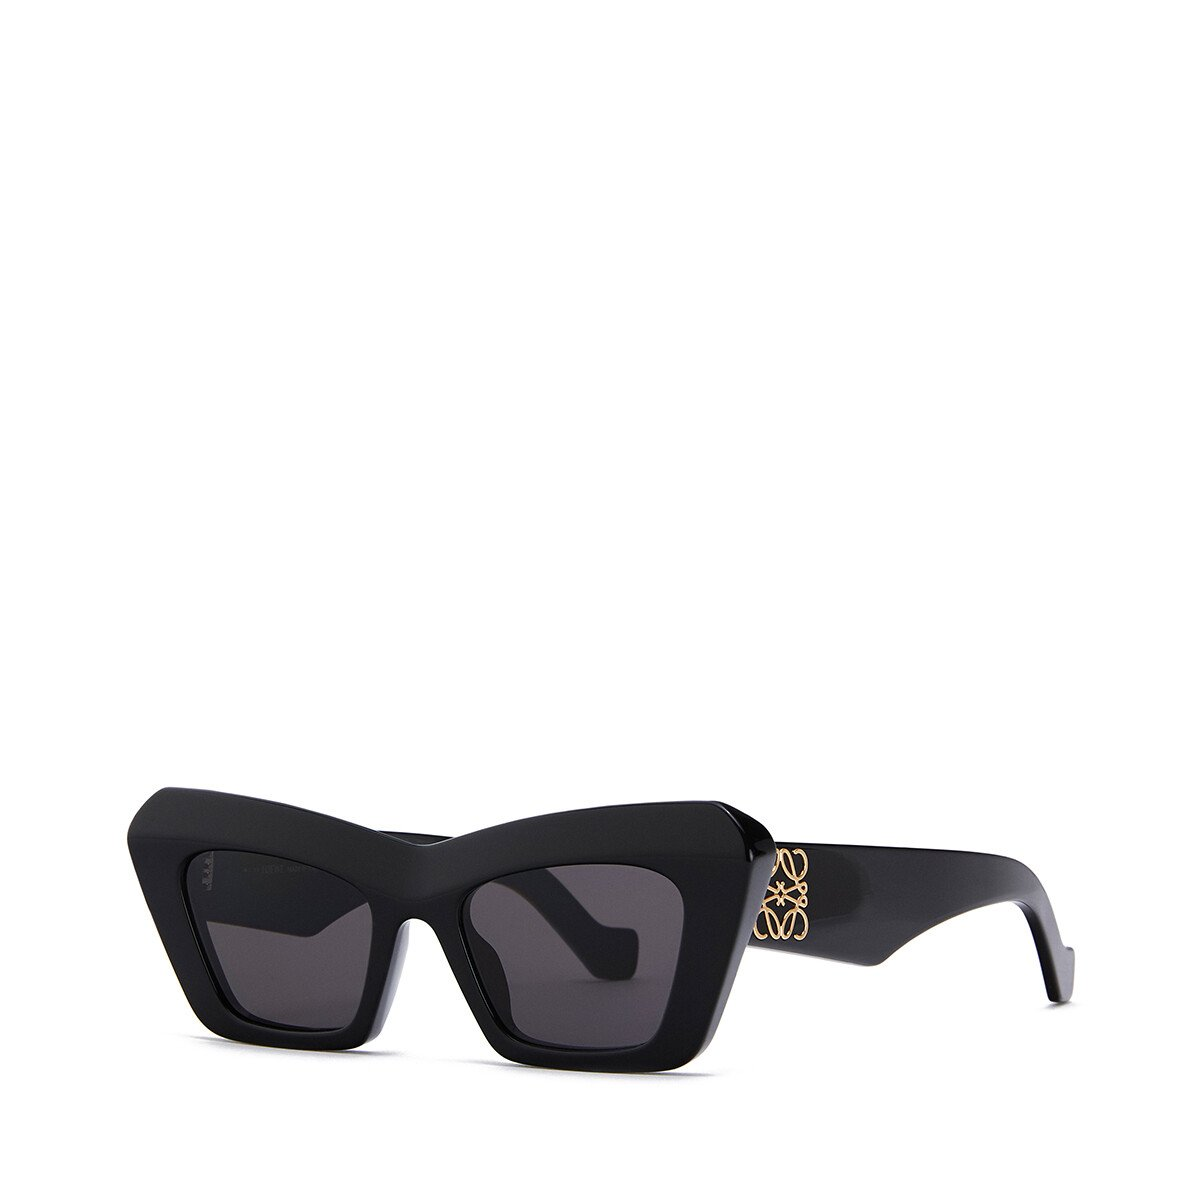 LOEWE Acetate Cateye Sunglasses Black front